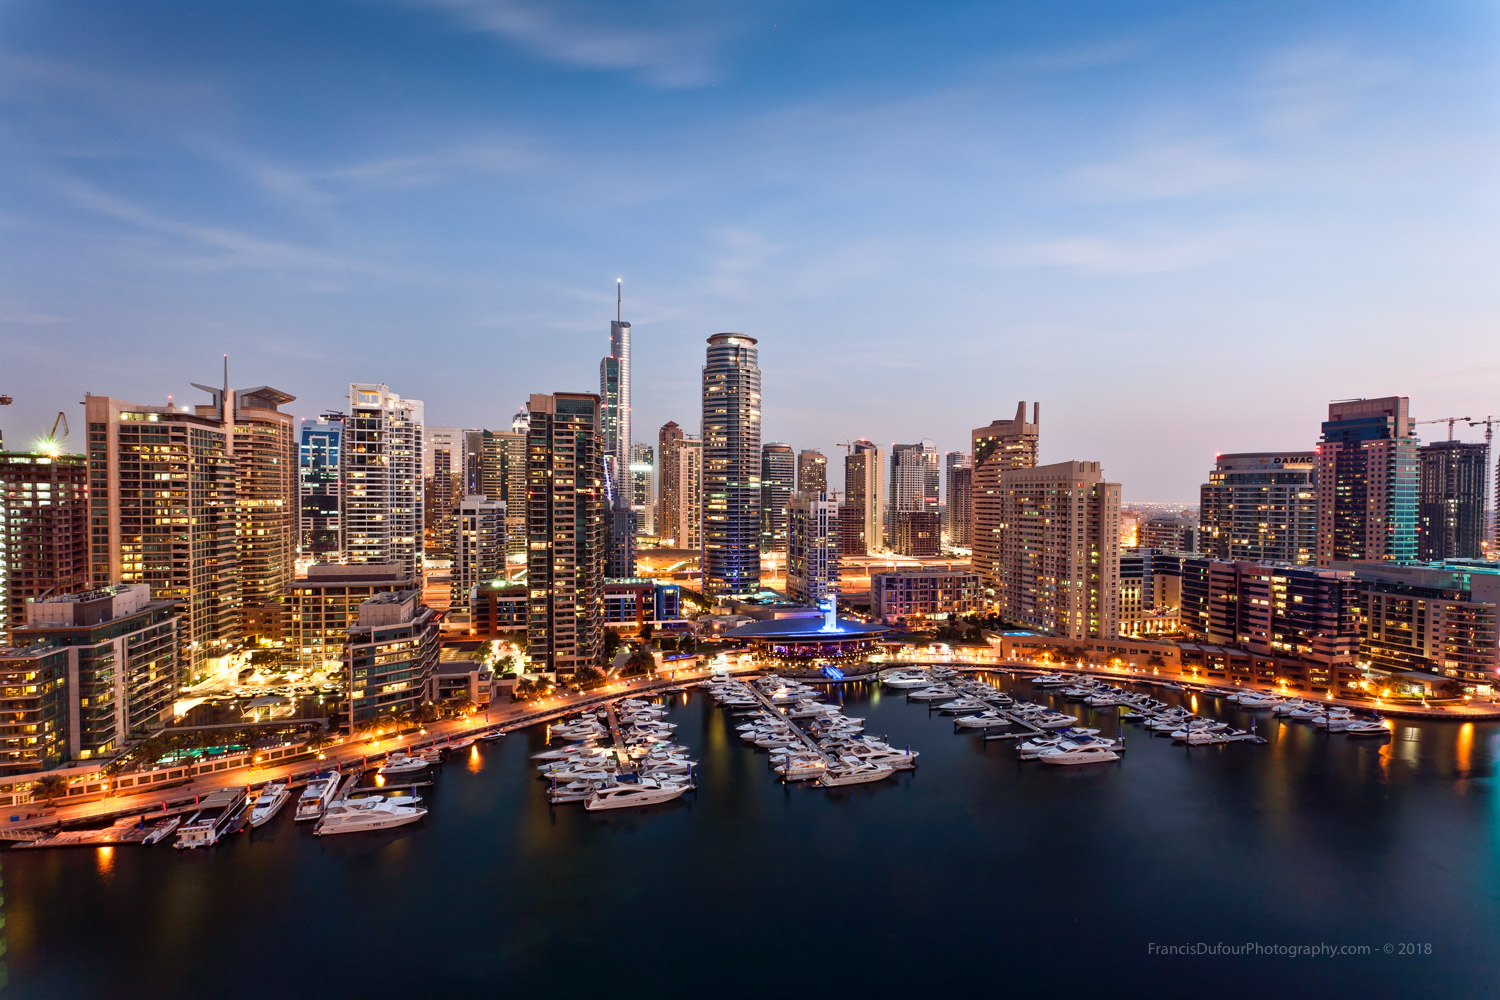 FD-IMG-8976-uae-dubai-marina-night-blue-hour